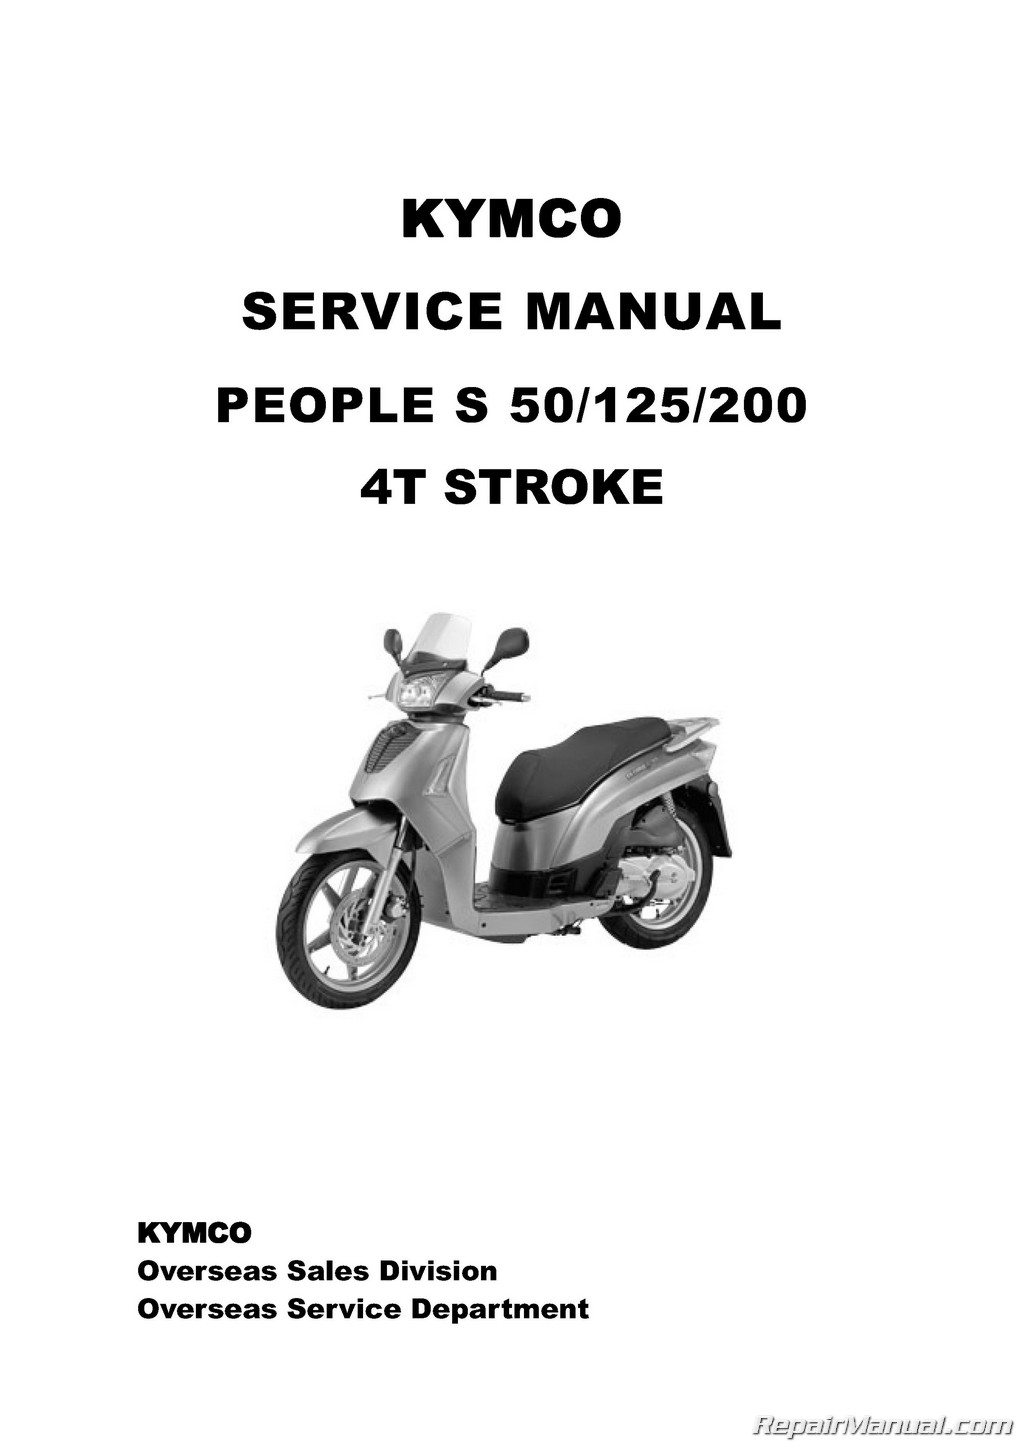 KYMCO People S Scooter Service Manual Printed by CYCLEPEDIA